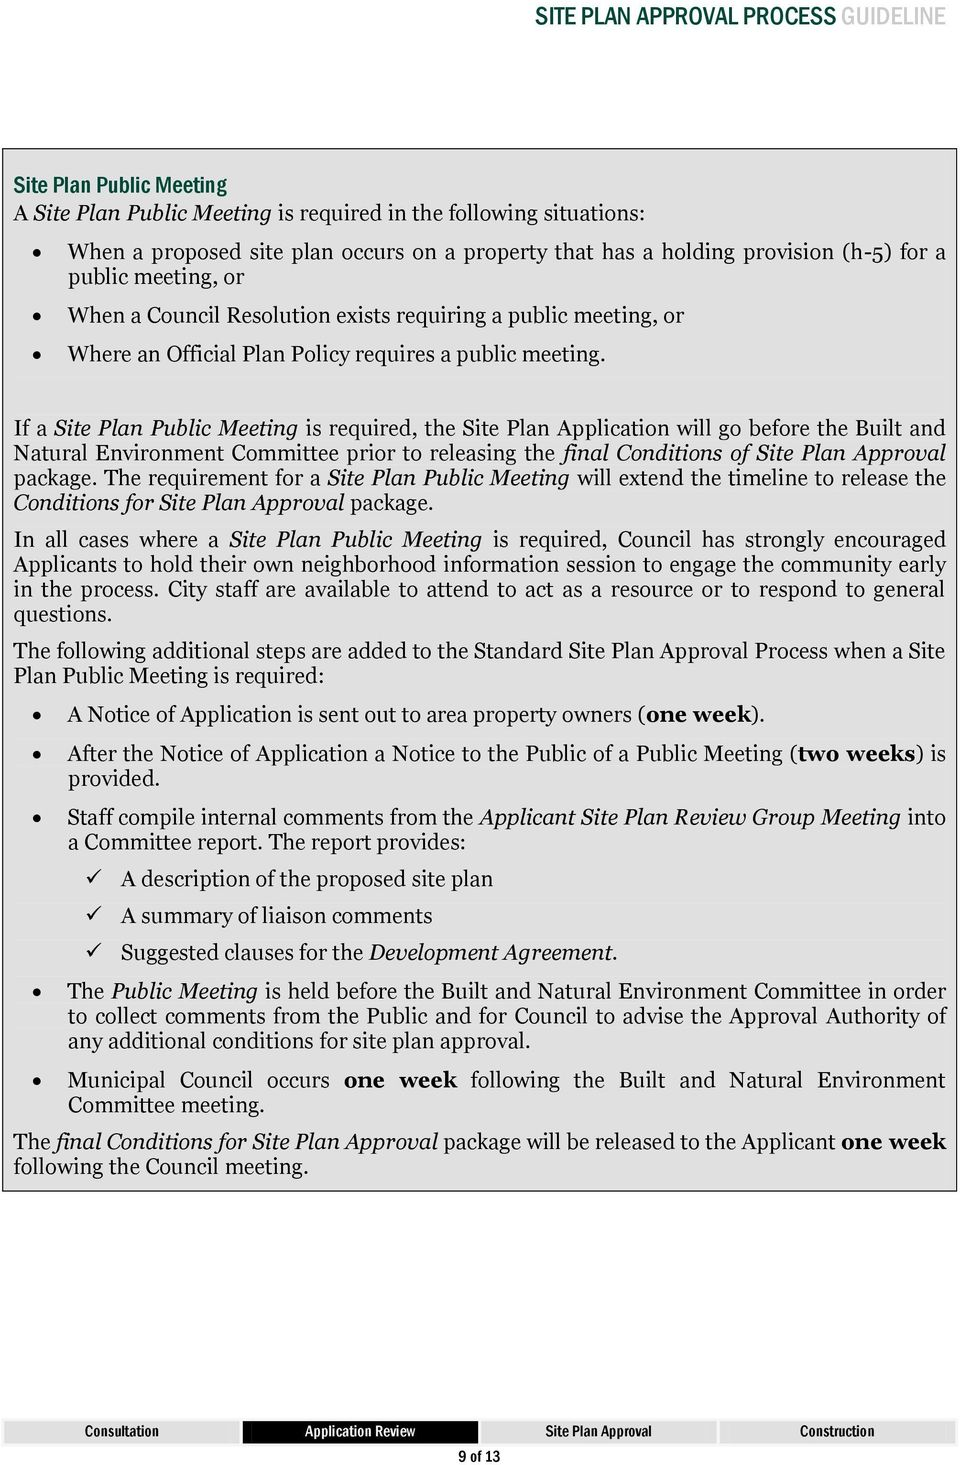 If a Site Plan Public Meeting is required, the Site Plan Application will go before the Built and Natural Environment Committee prior to releasing the final Conditions of Site Plan Approval package.